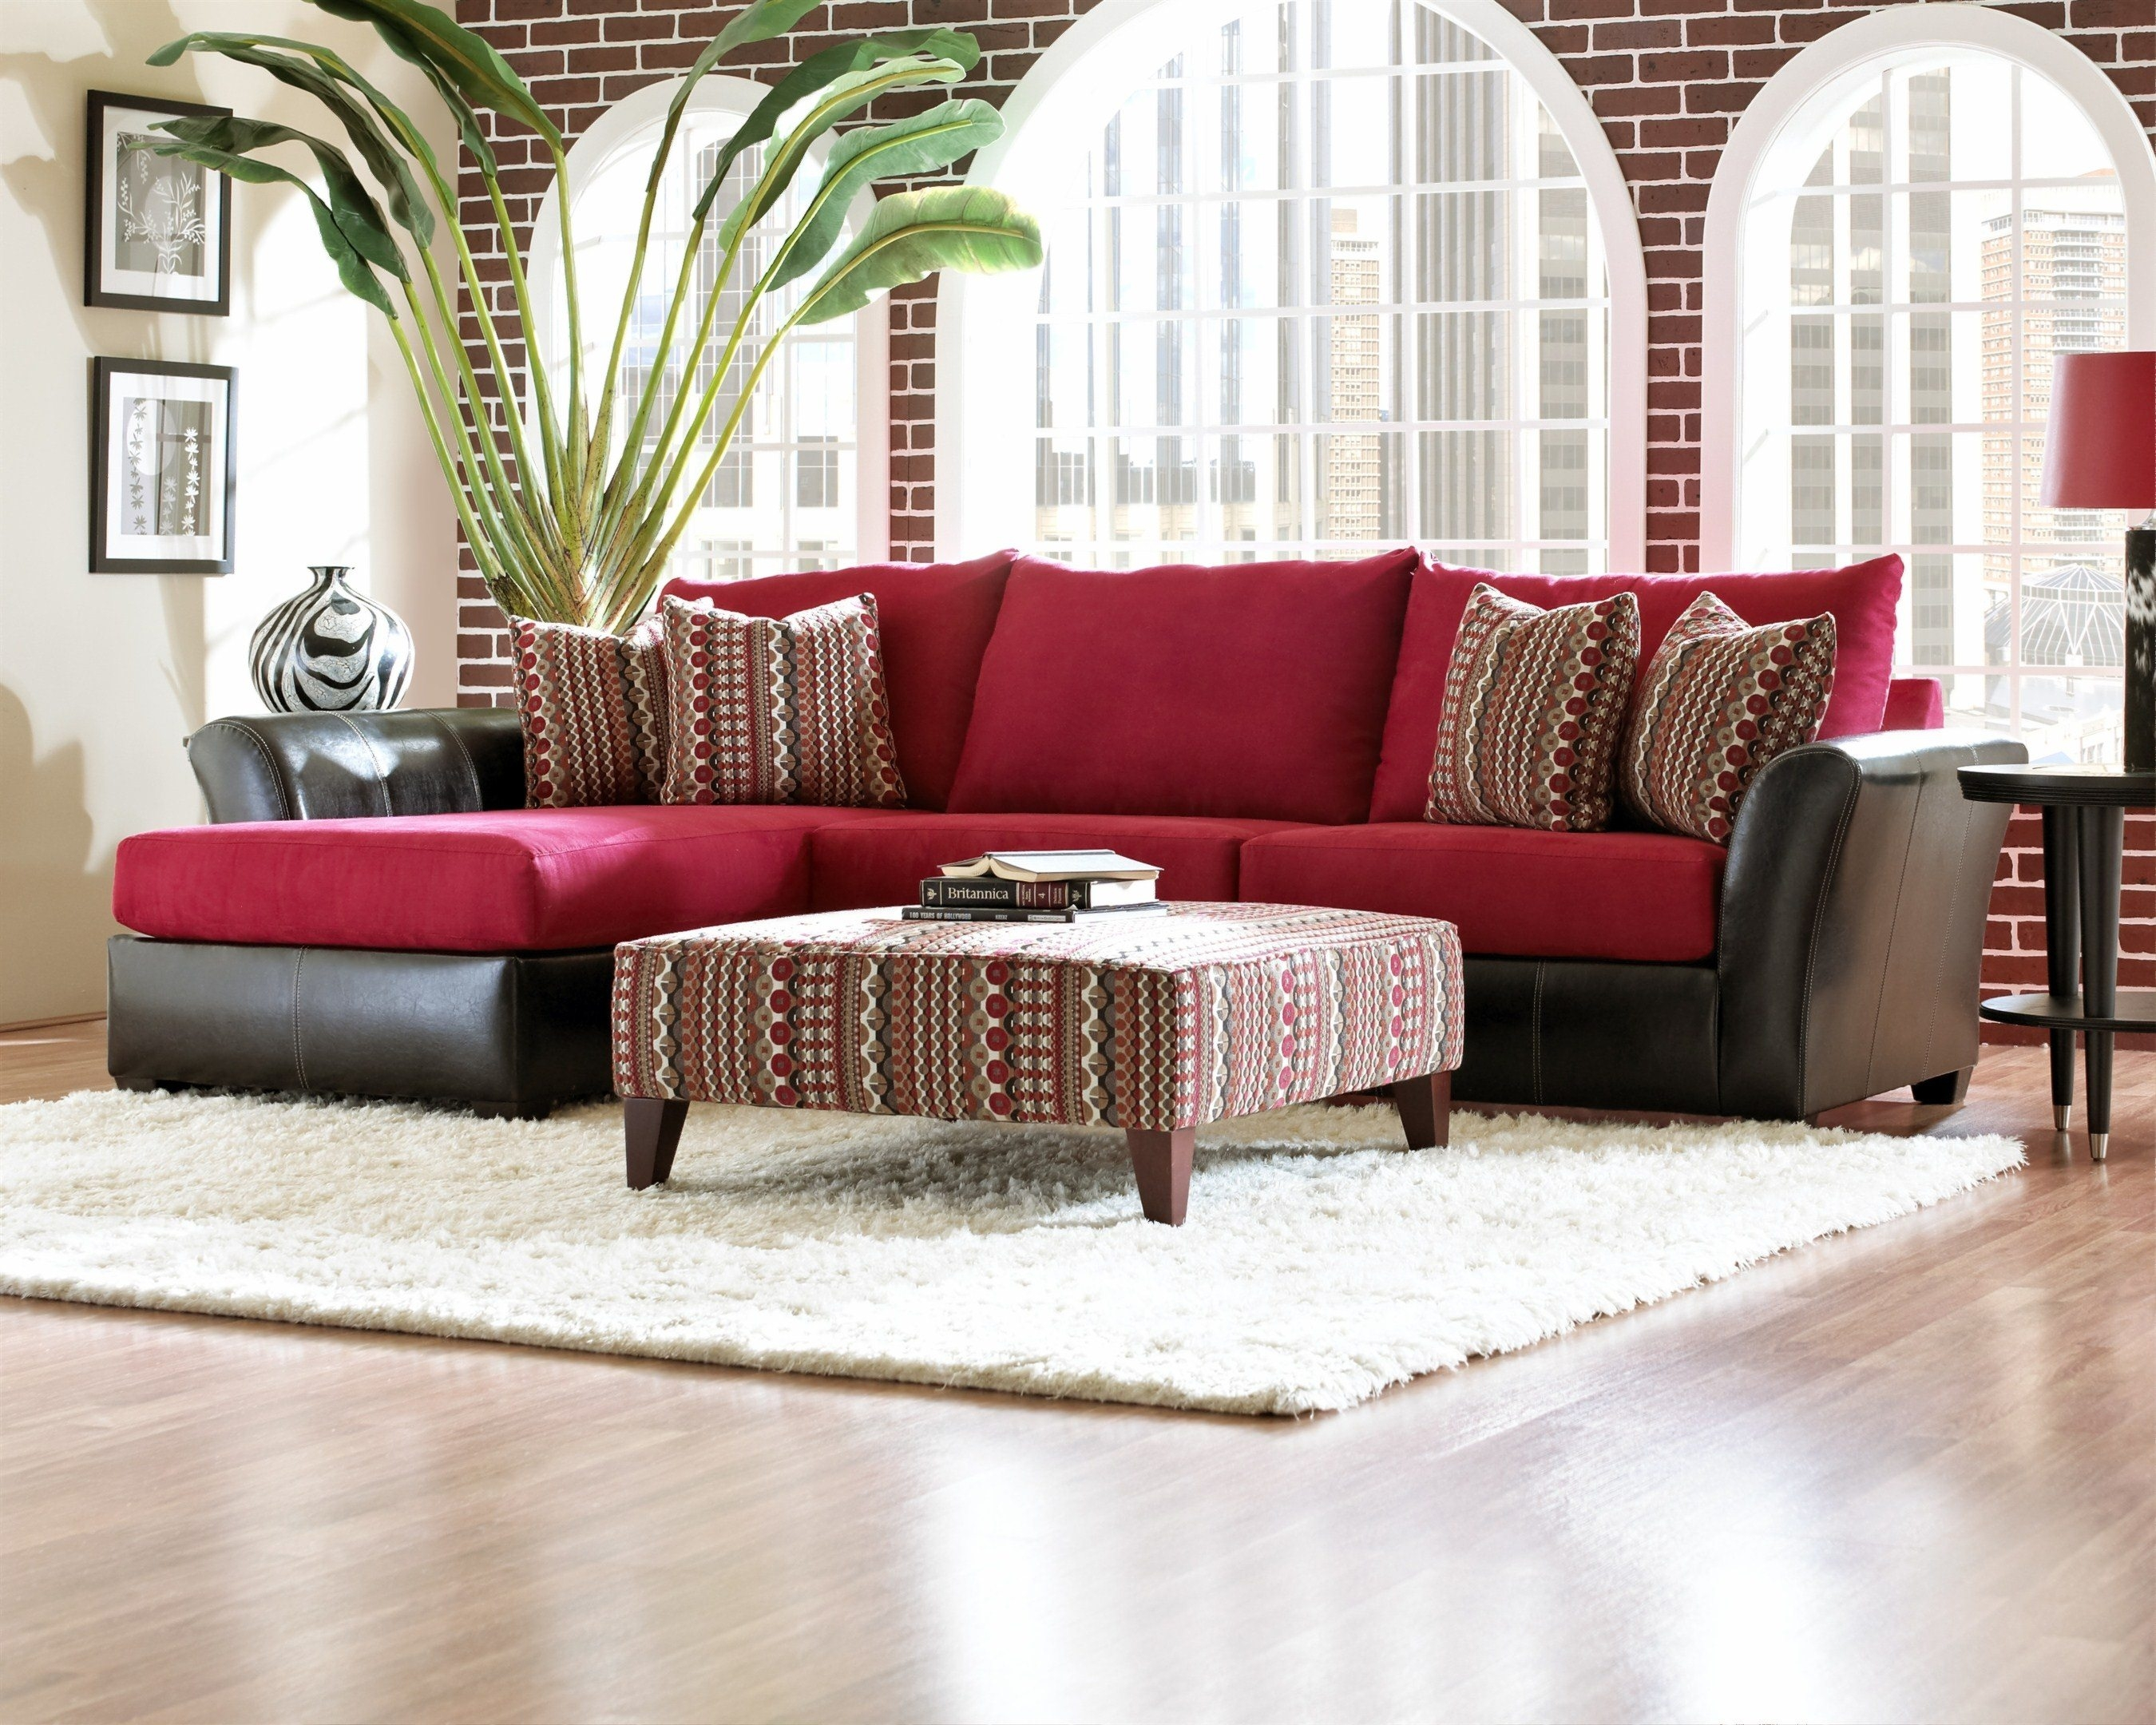 Sofas Luxury Your Living Room Sofas Design With Red Sectional For Colorful Sectional Sofas (#12 of 12)